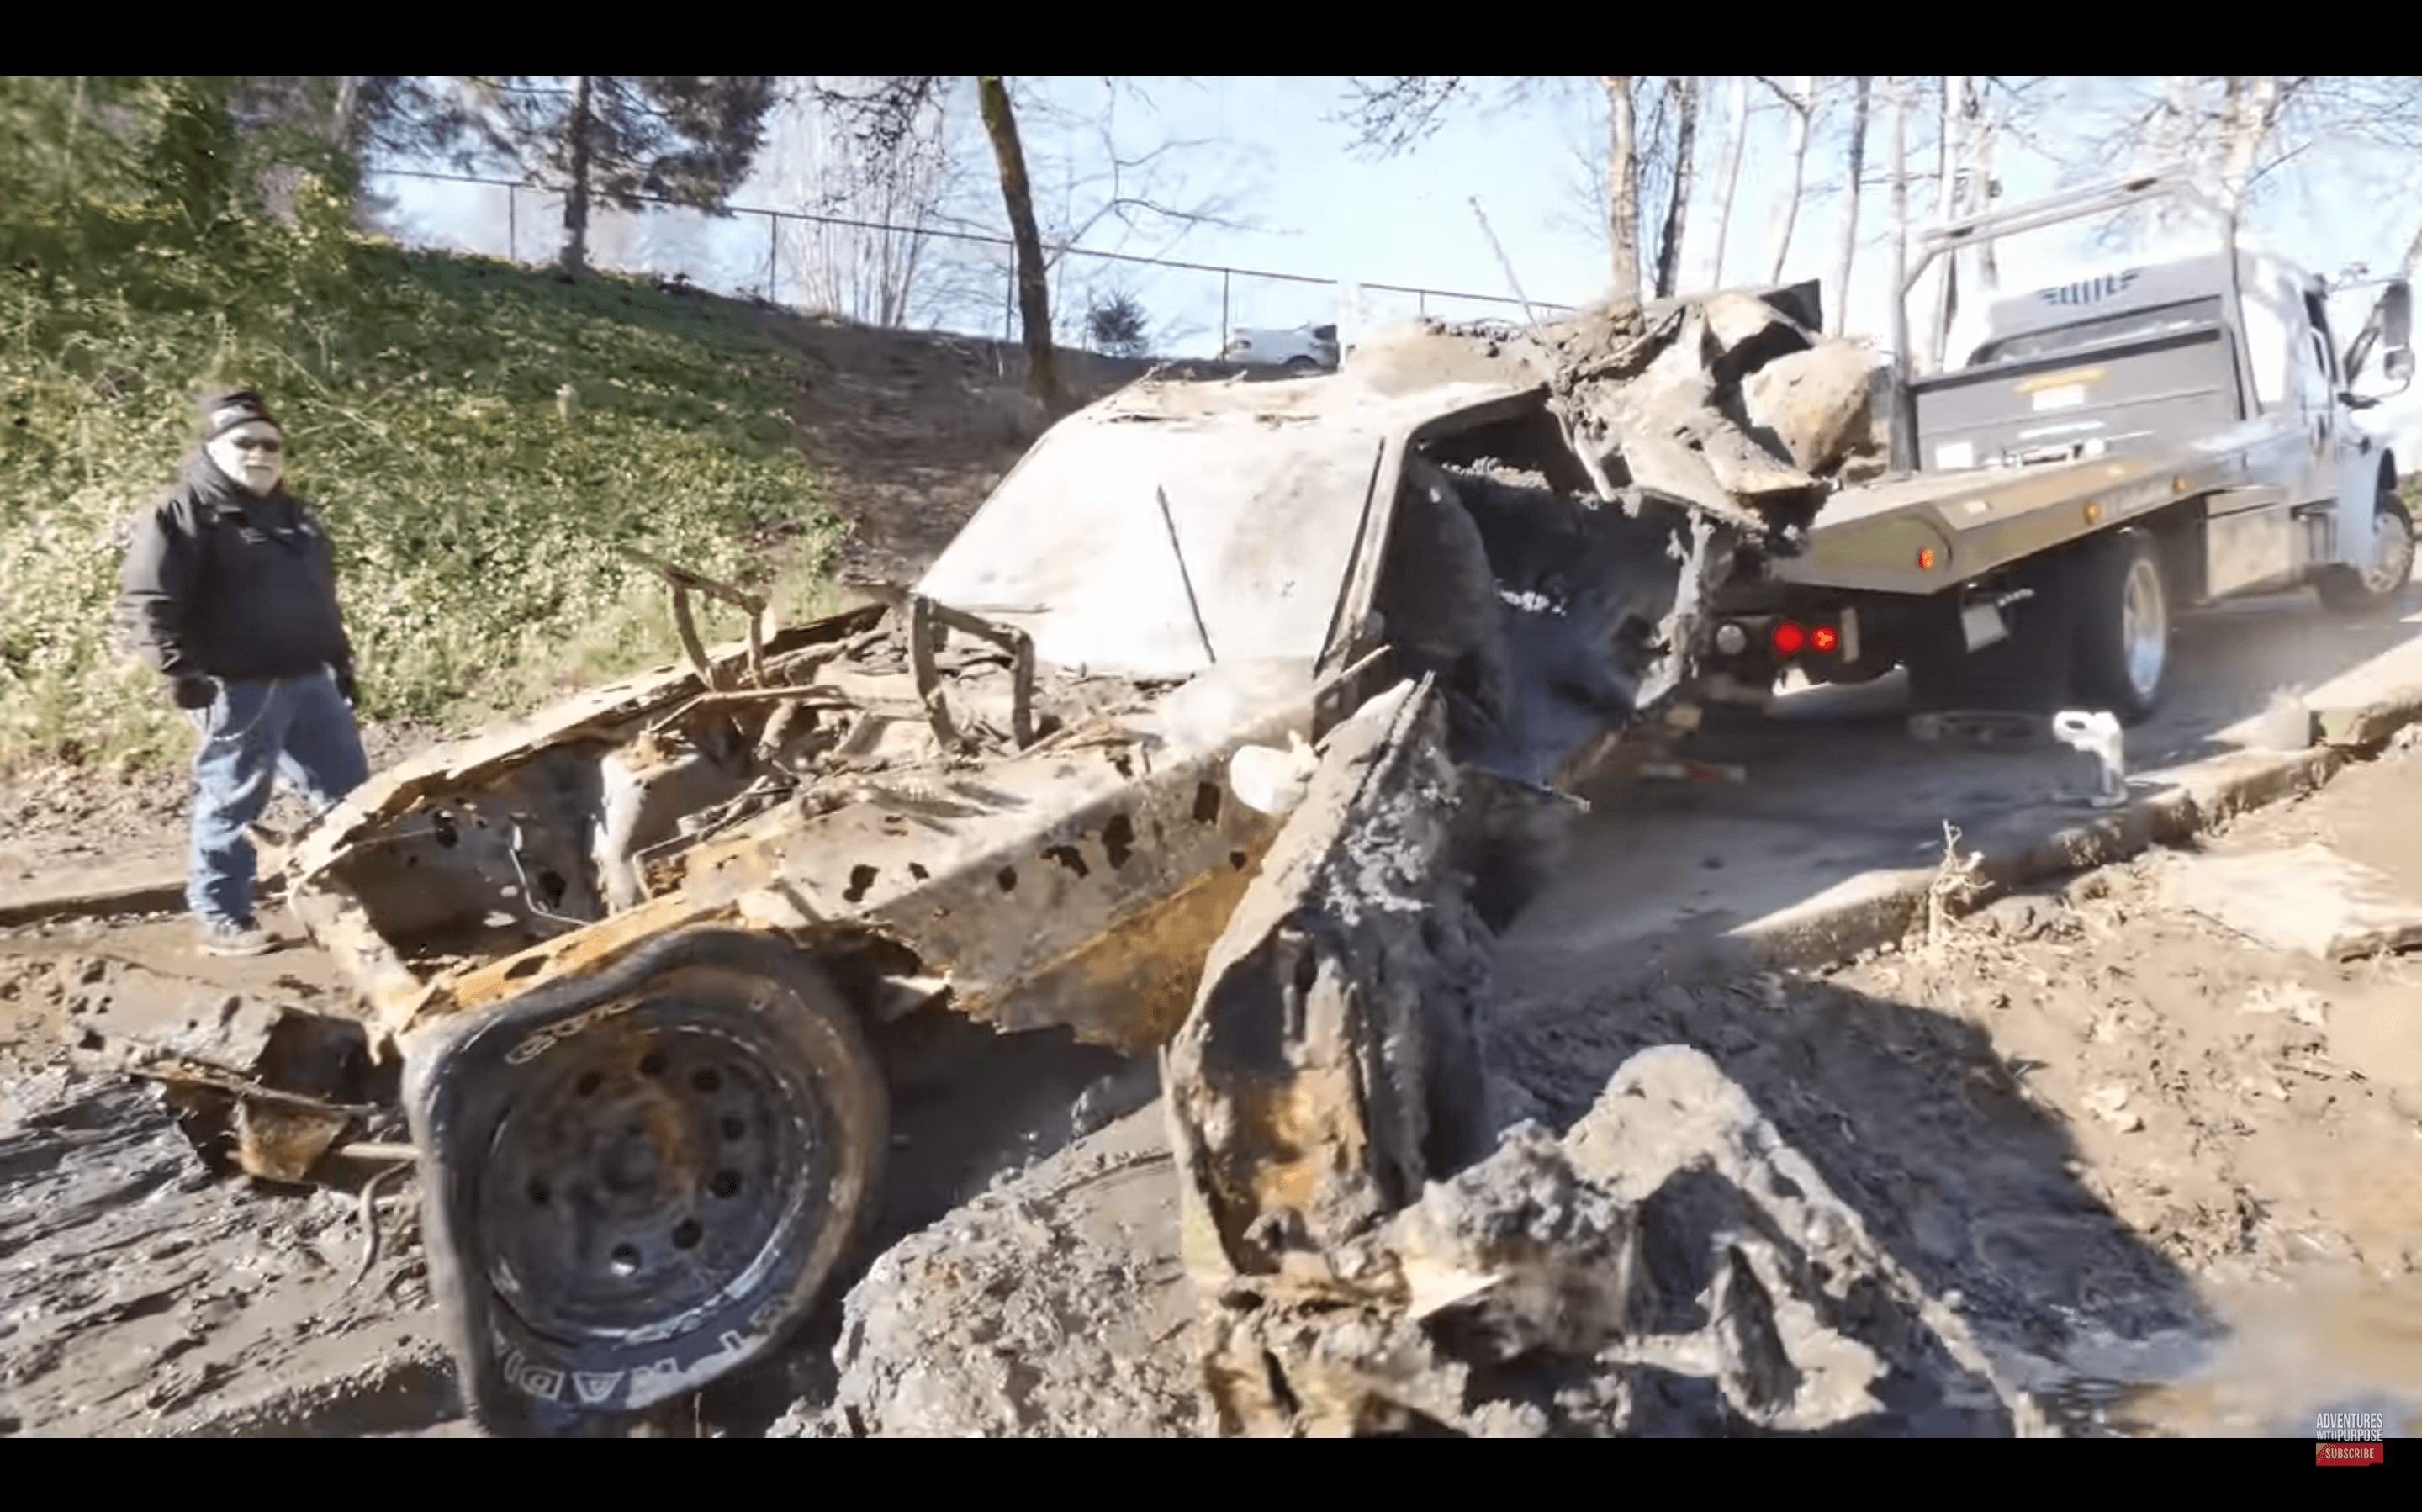 Watch: A 73 Mach 1 Get Pulled Out of an Oregon River